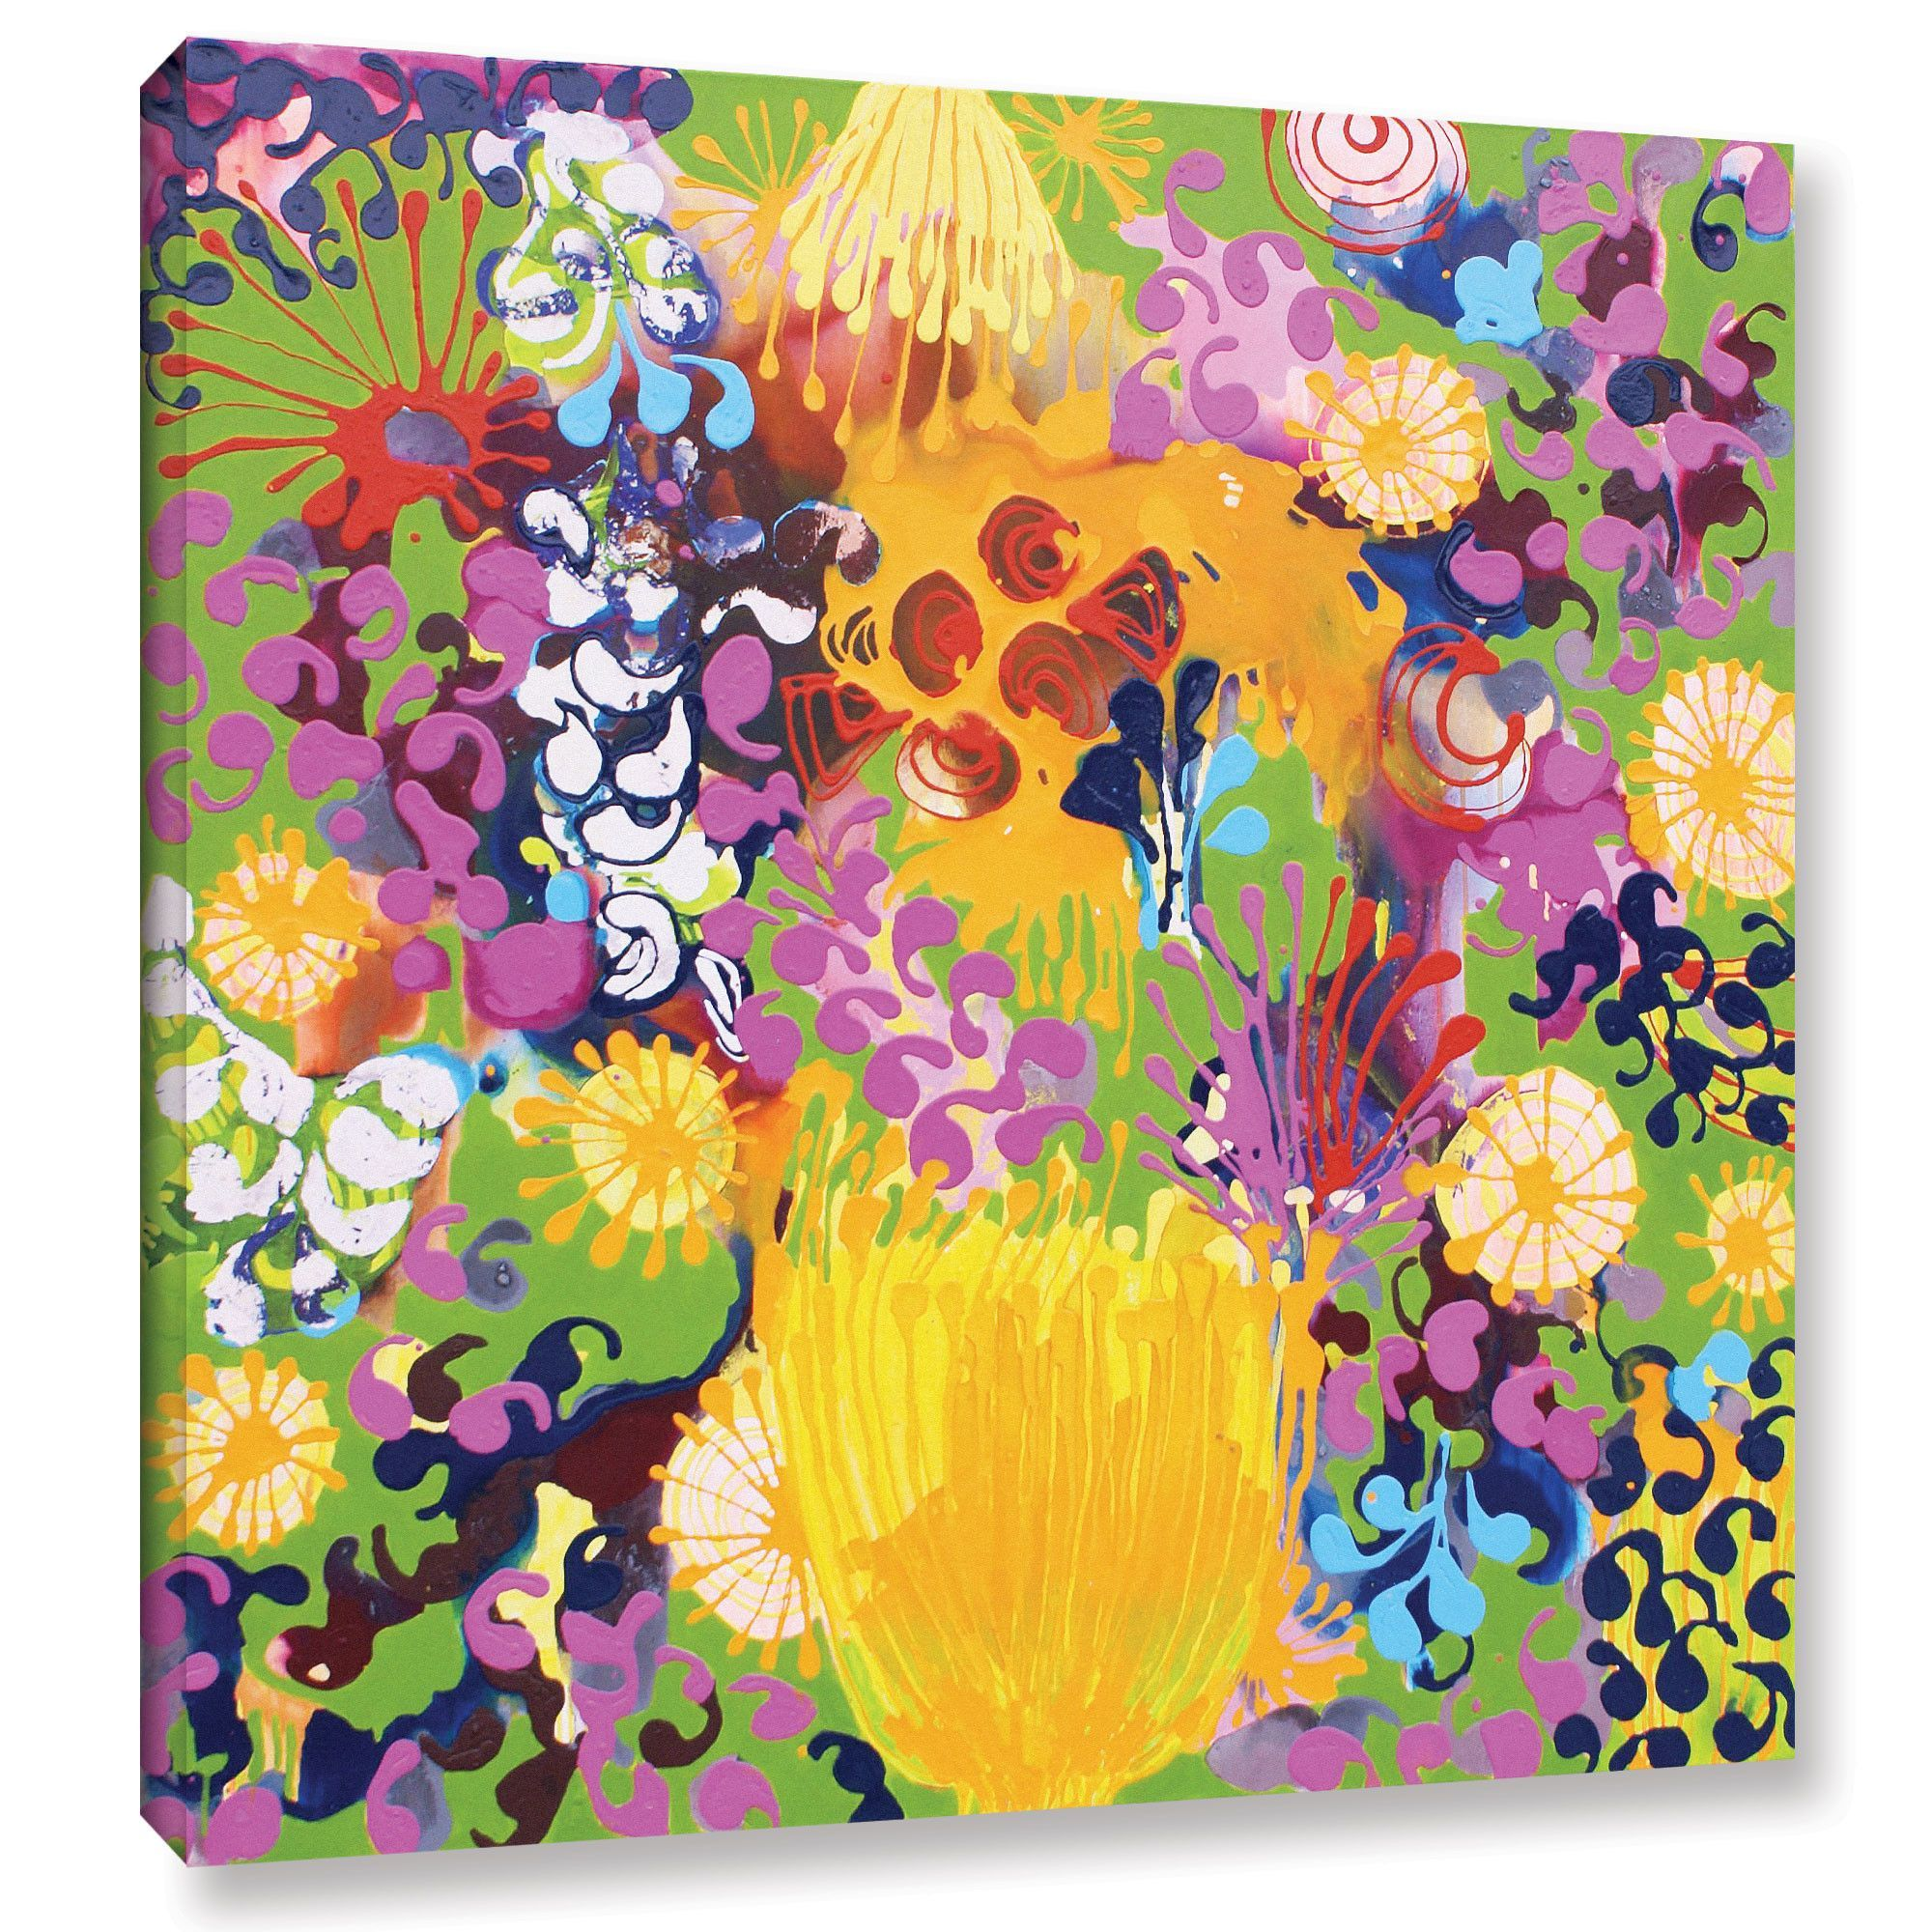 Sofie Siegmann Hard Candy Painting Print on Wrapped Canvas ...